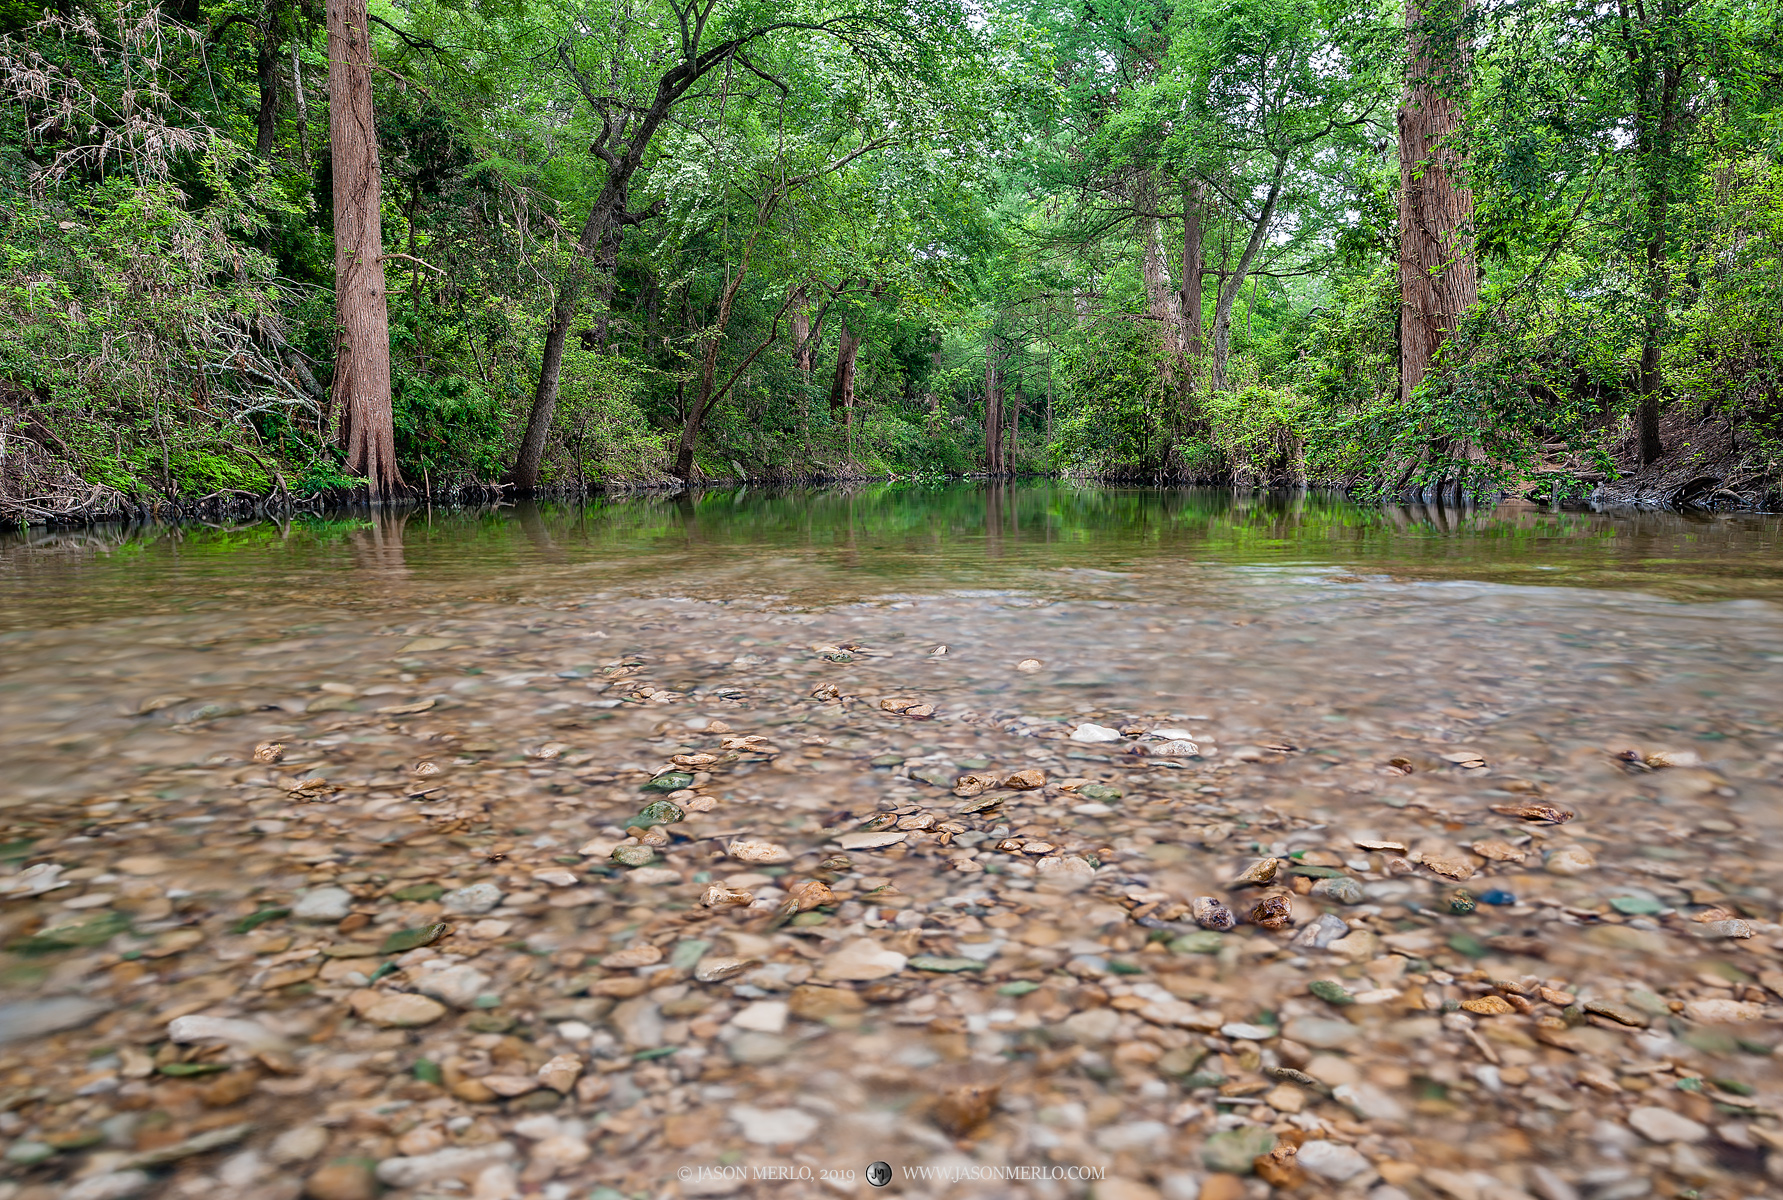 Shallow water runs over stones in a creek in the Texas Hill Country.